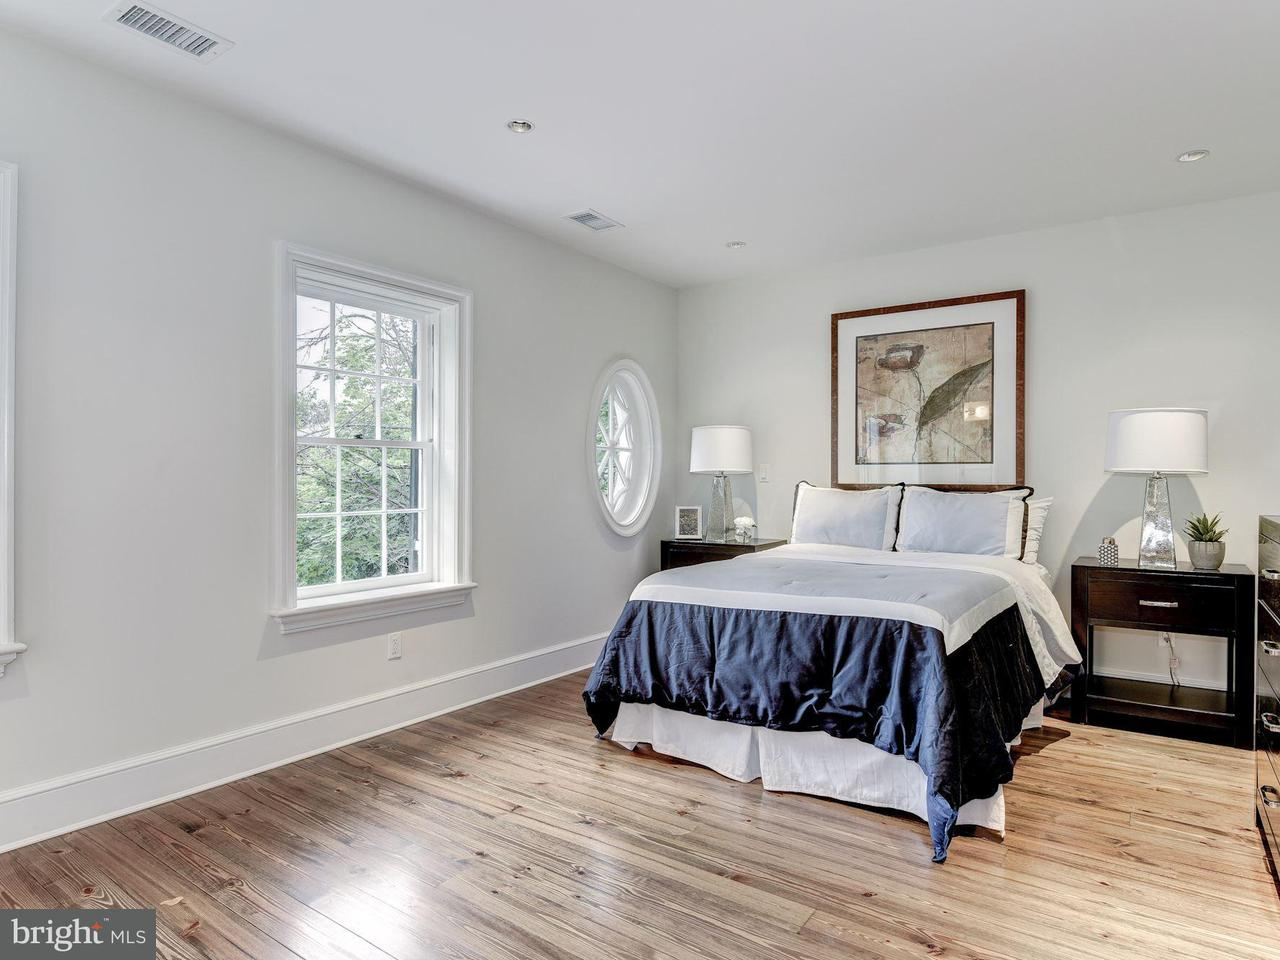 Additional photo for property listing at 1320 29TH ST NW 1320 29TH ST NW Washington, District Of Columbia 20007 United States